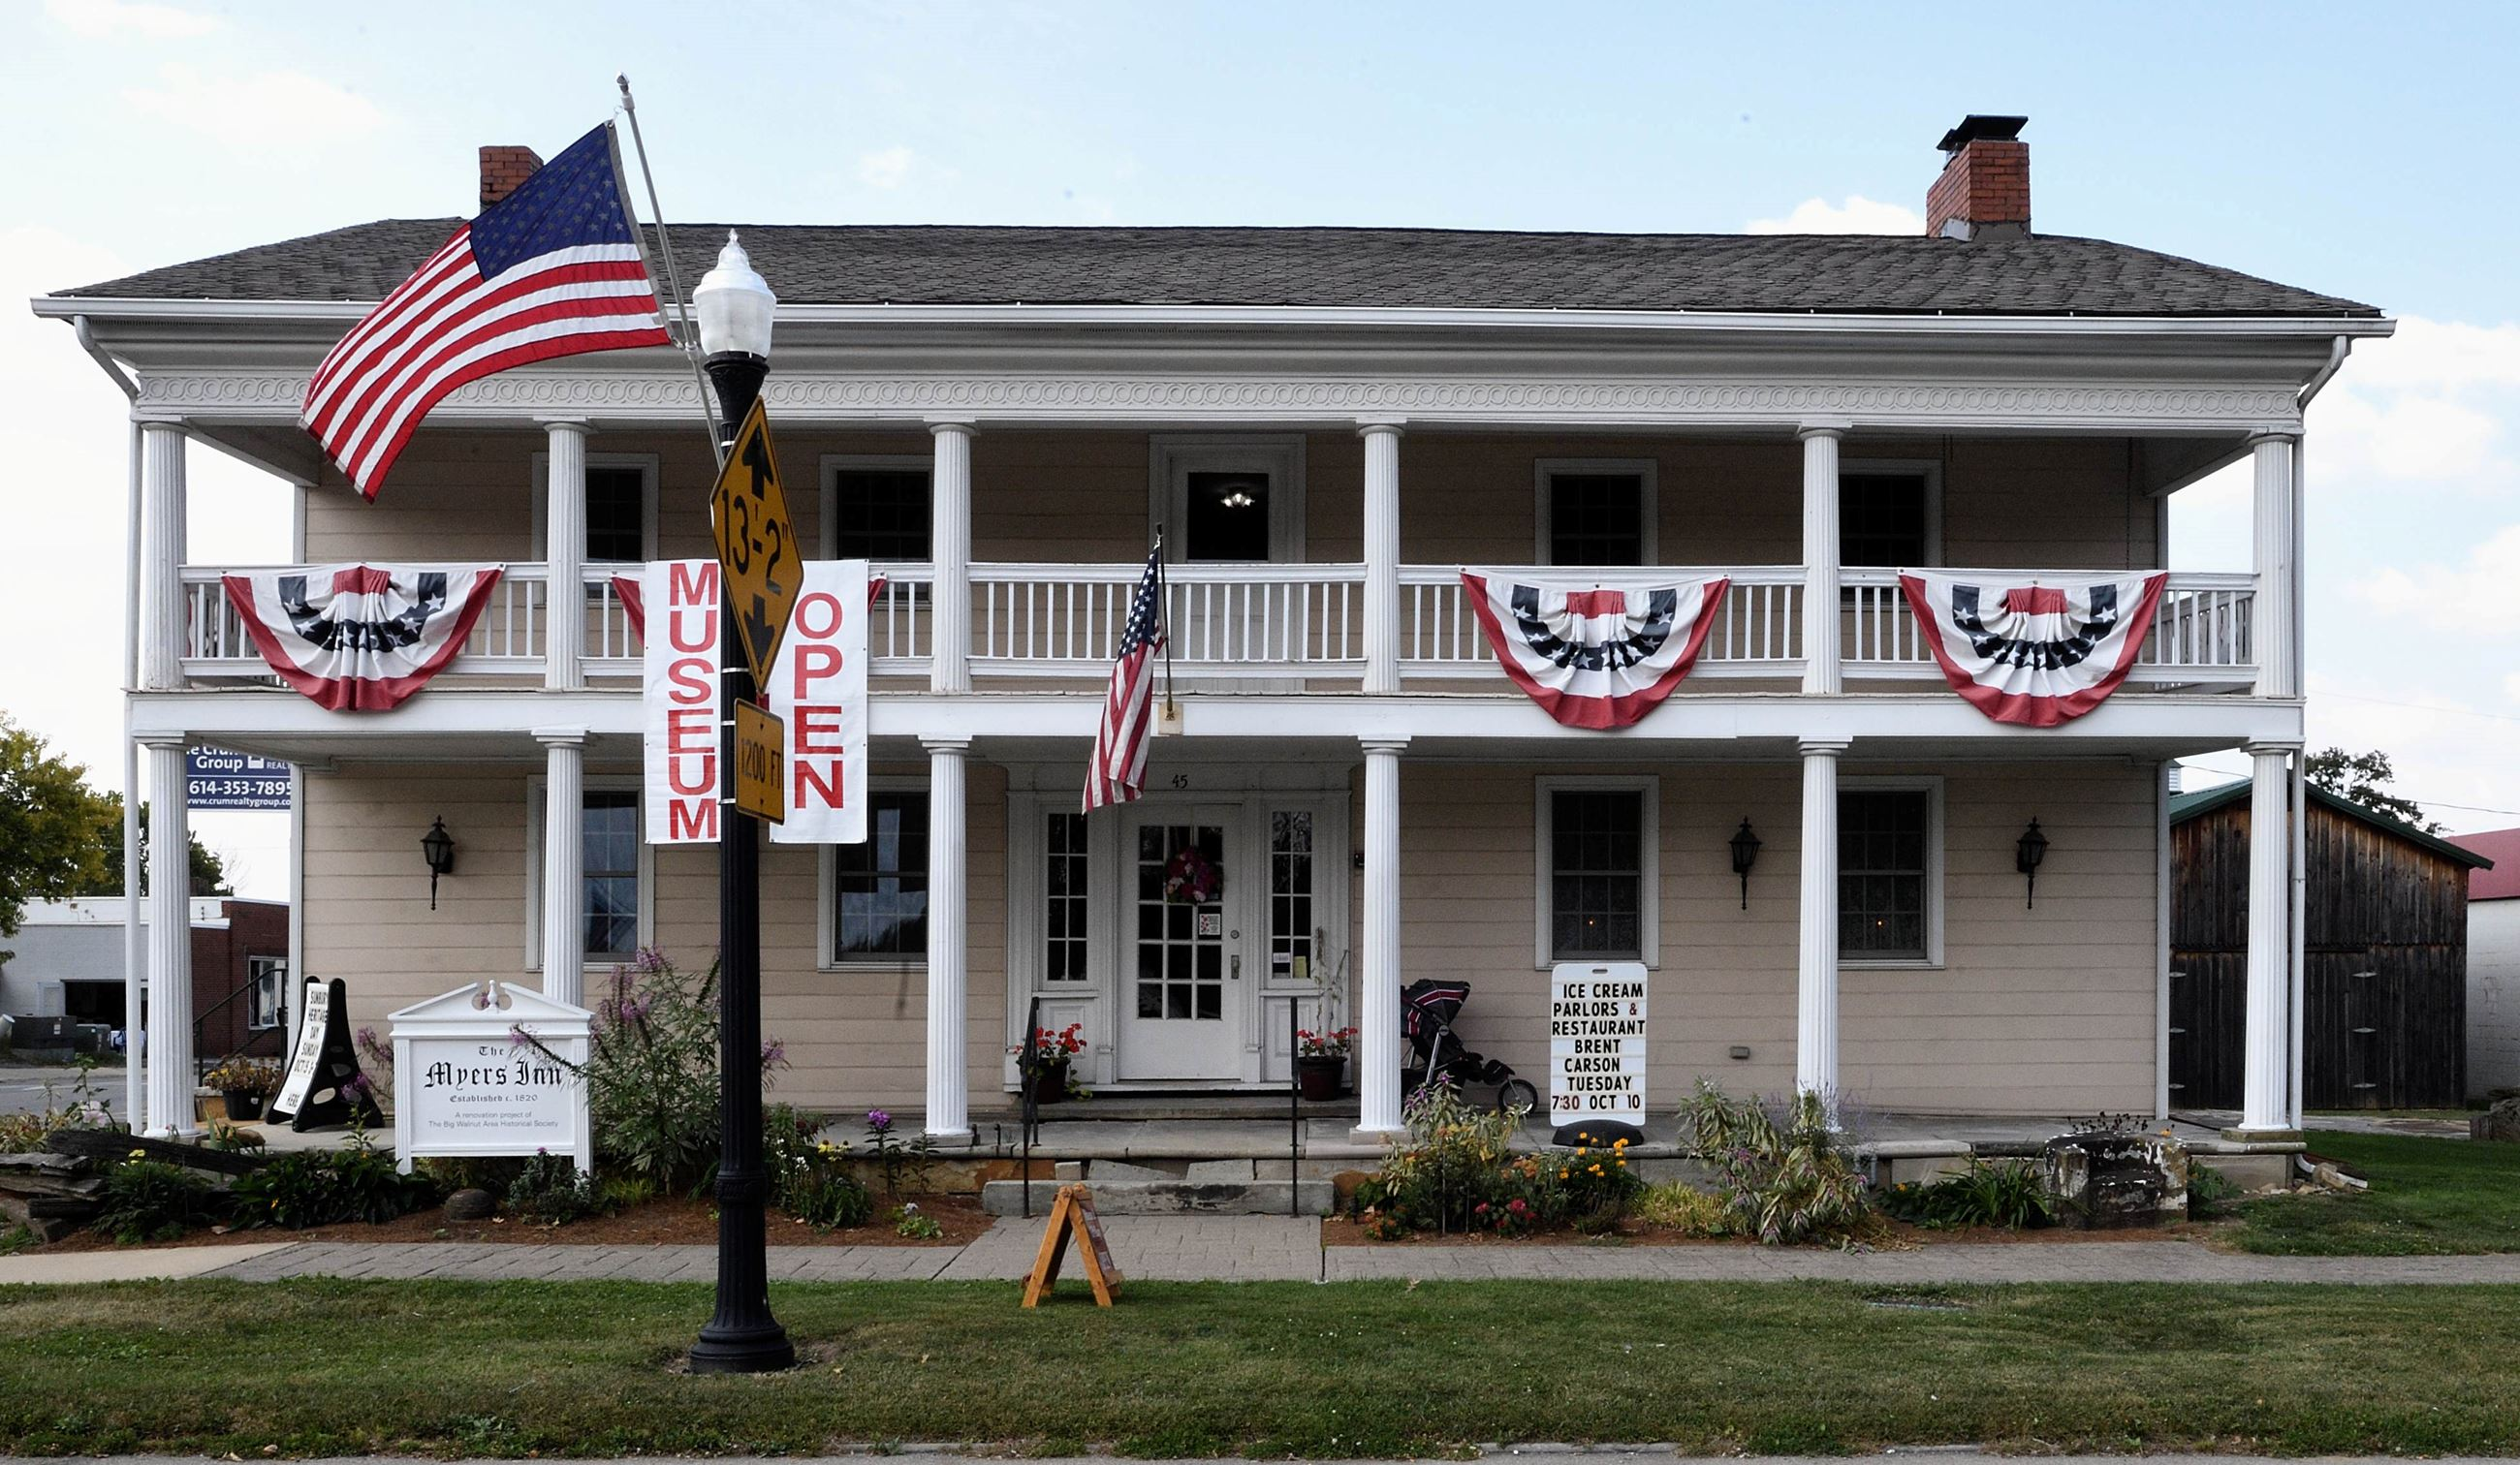 Exterior view of the Myers Inn Museum